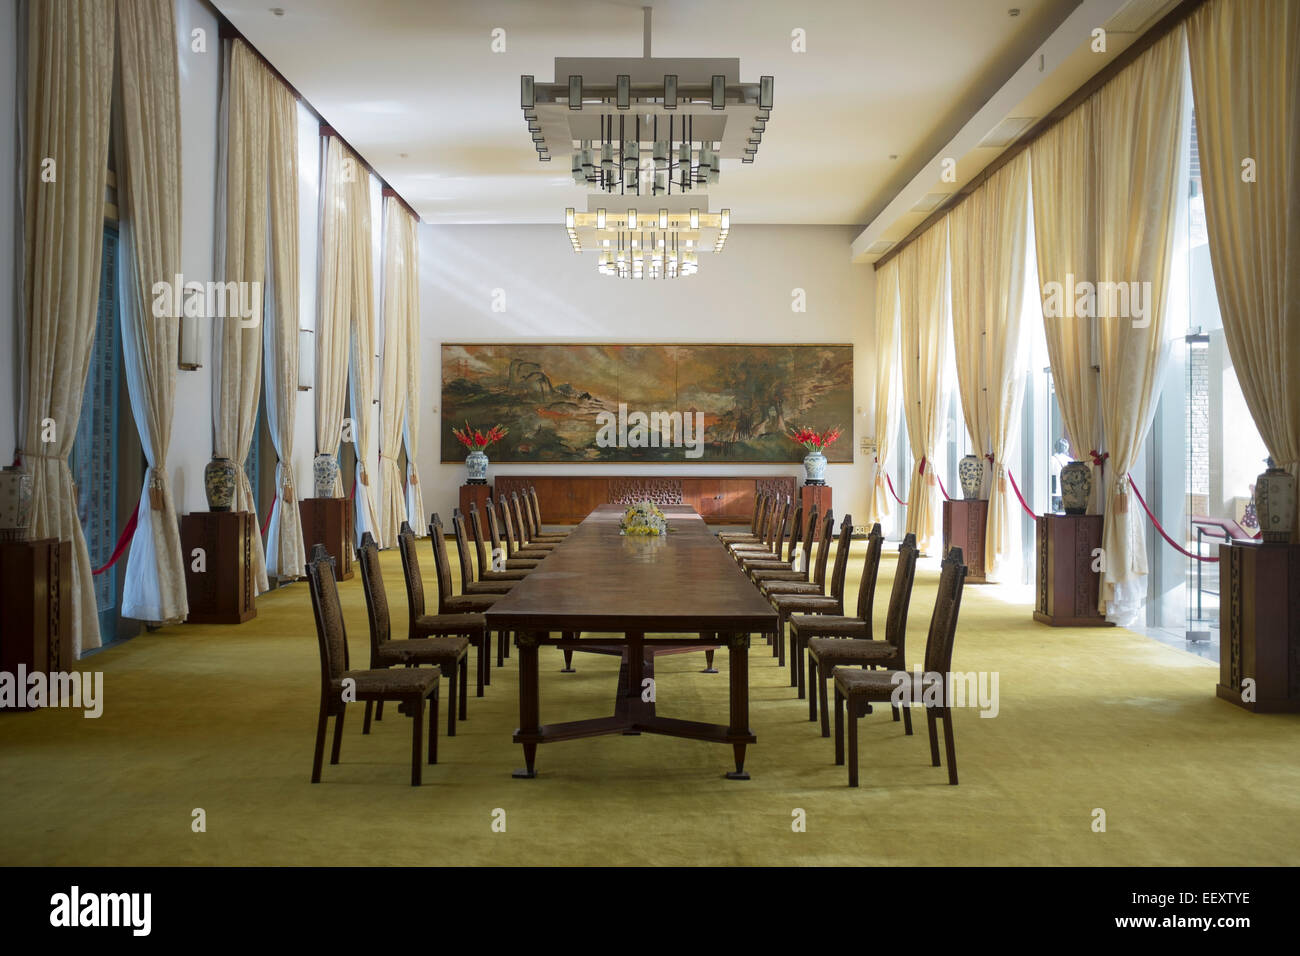 Dining Banqueting Room At The Reunification Palace Ho Chi Minh City Vietnam    Stock Image